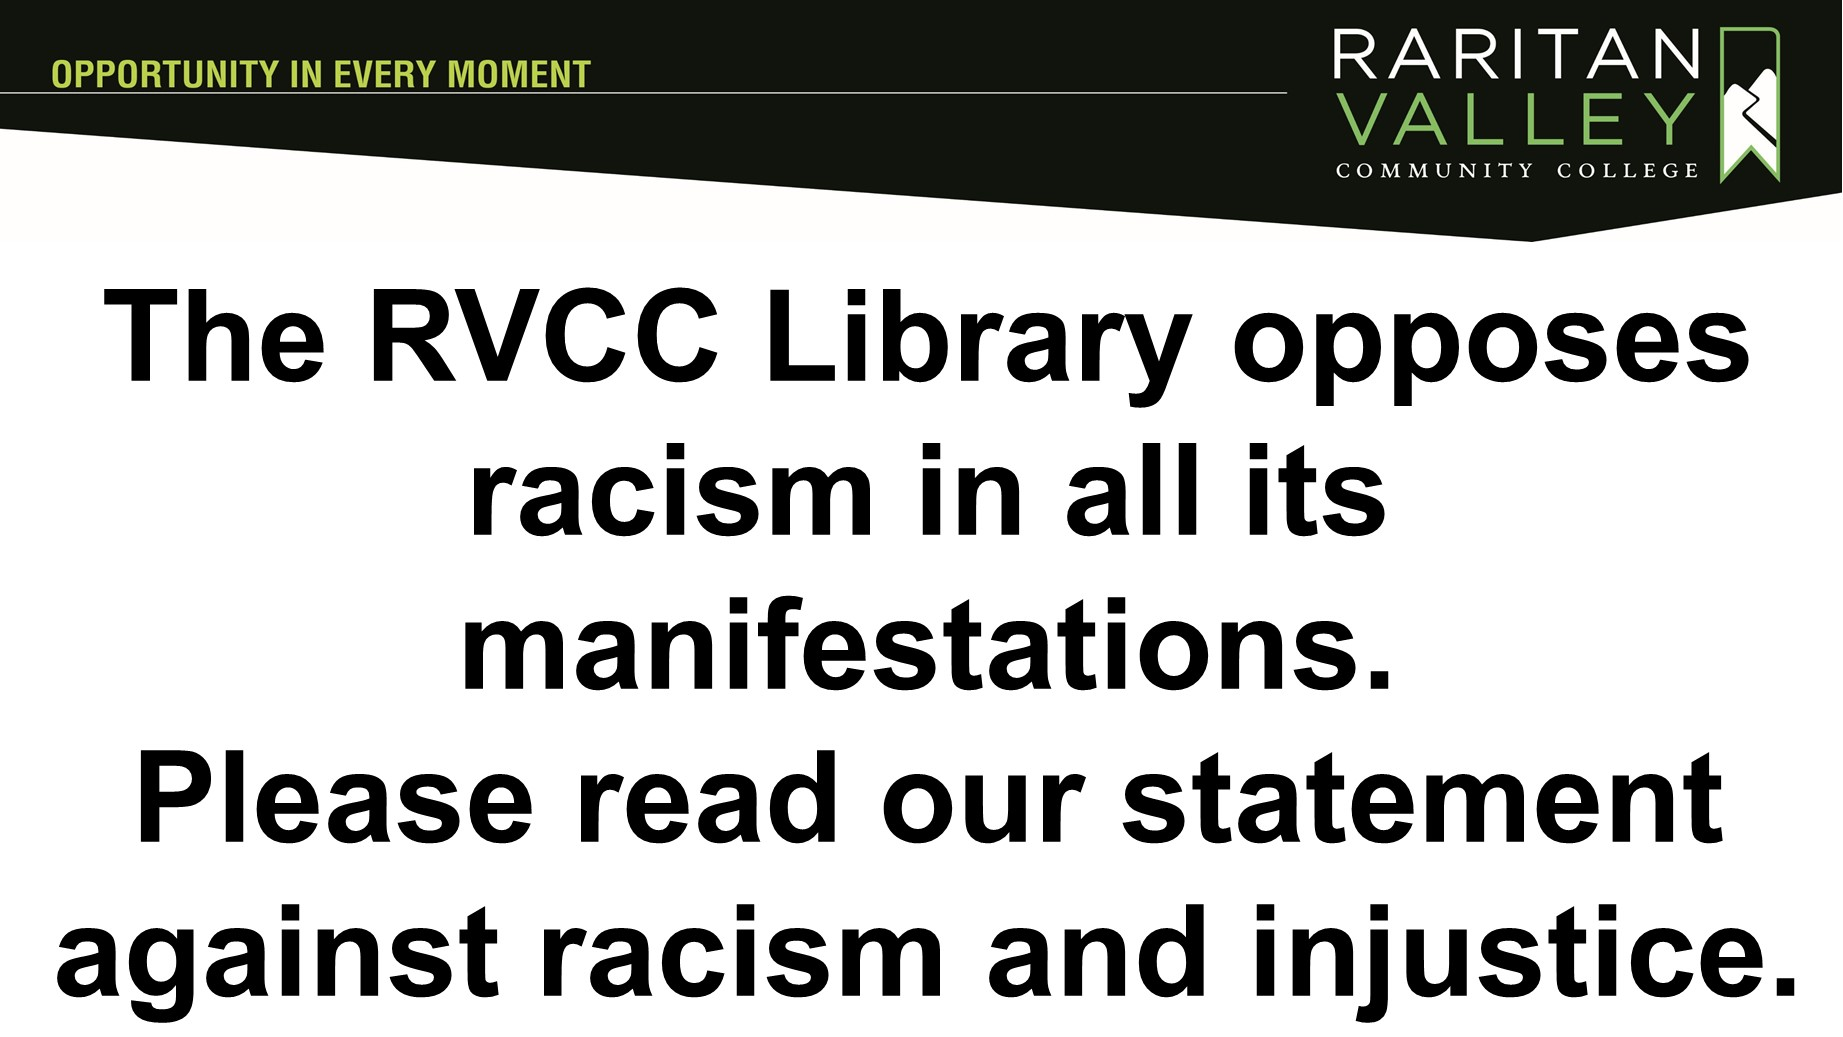 the RVCC library opposes racism